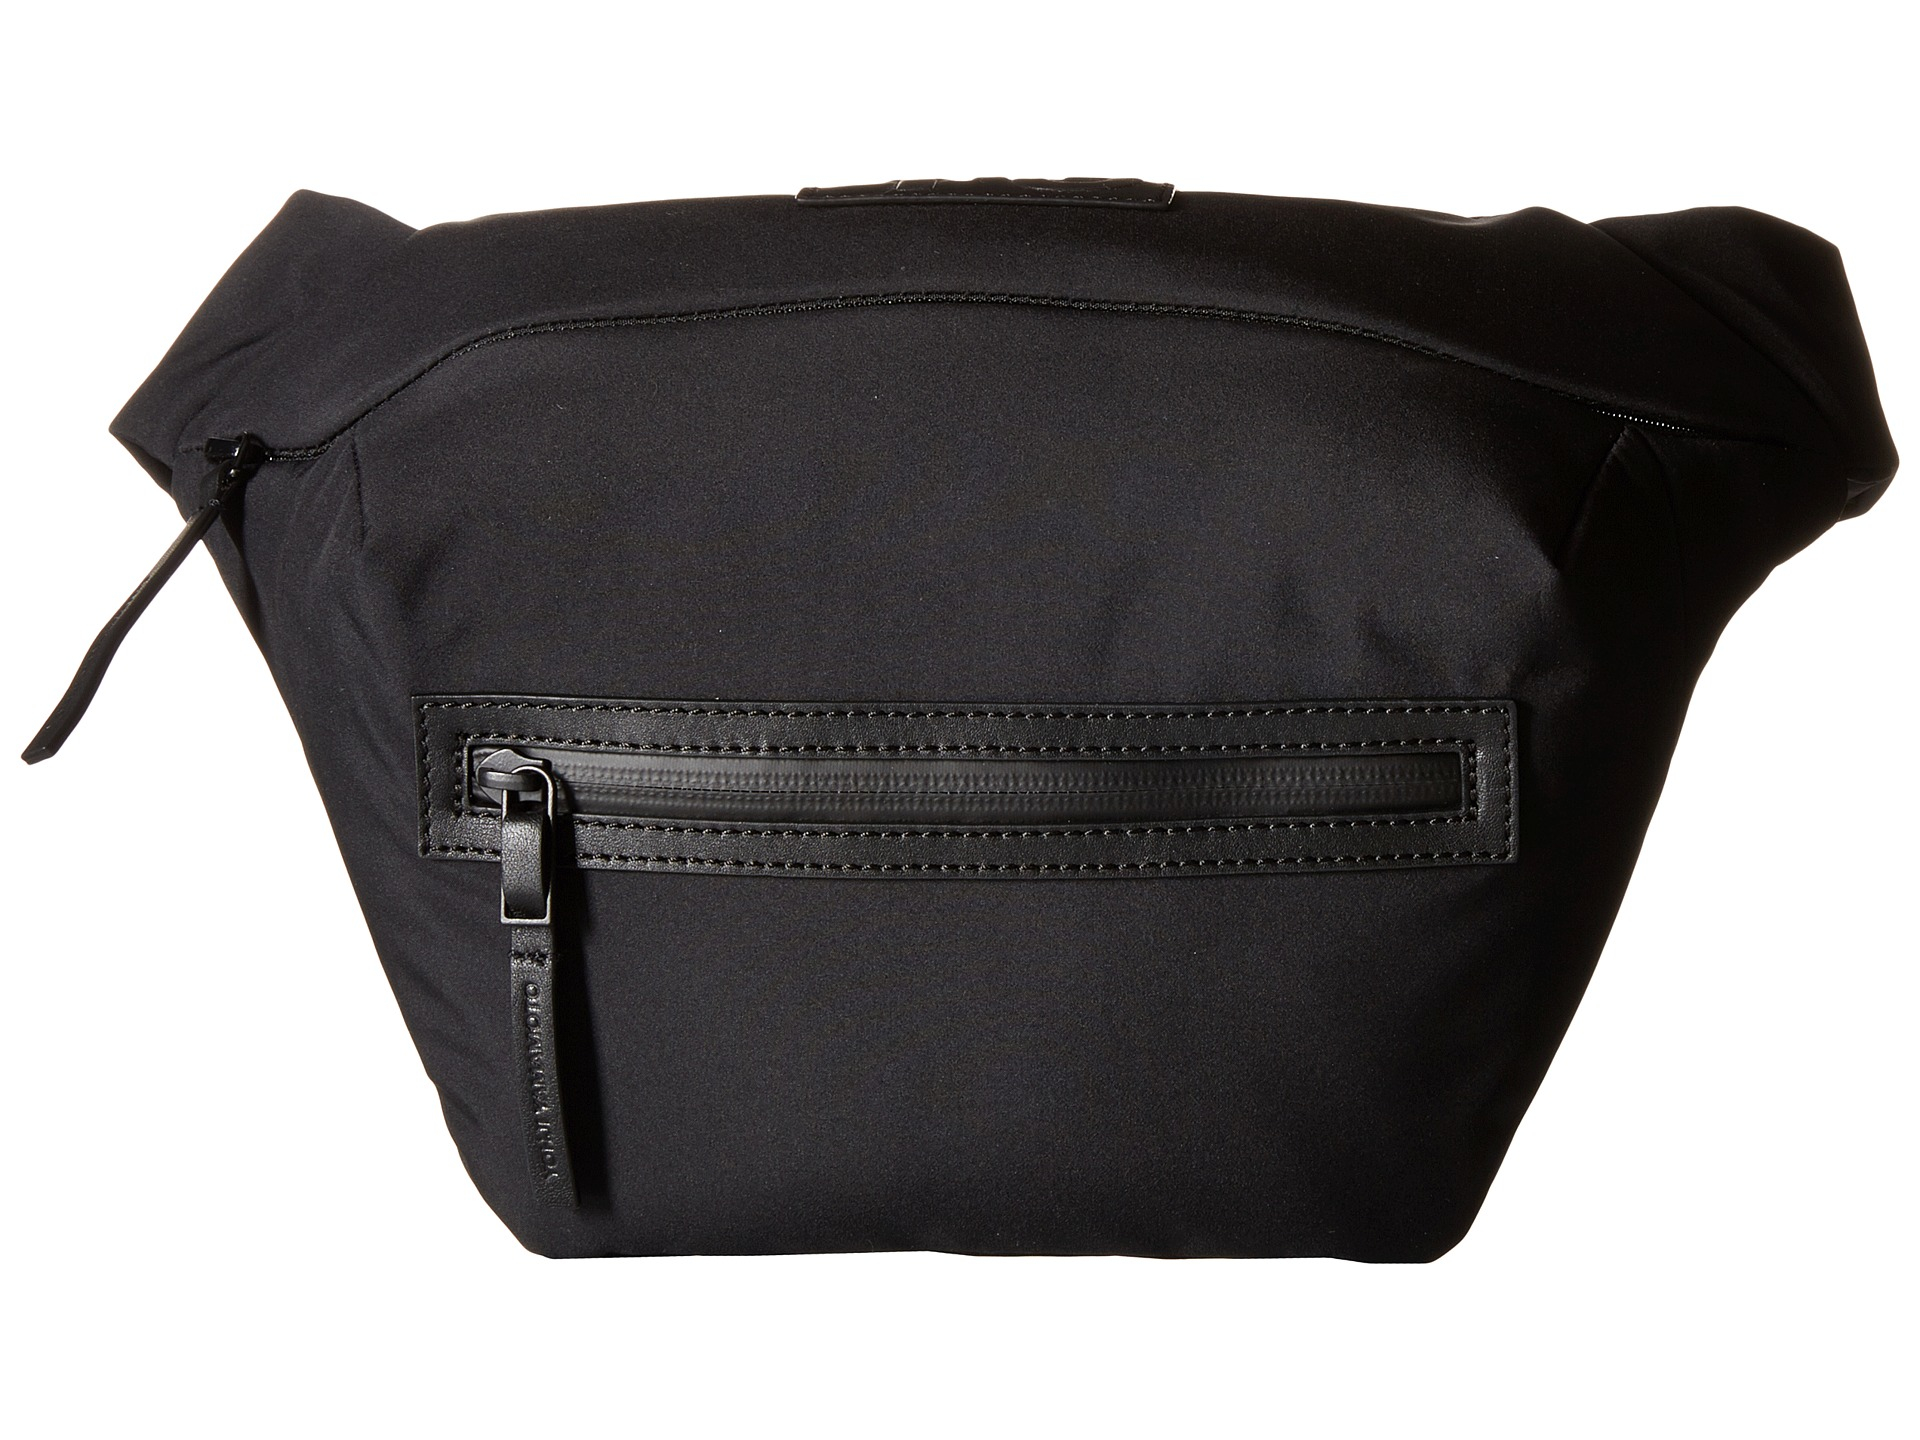 14f8a18d6a8 Lyst - Y-3 Qasa Fanny Pack in Black for Men